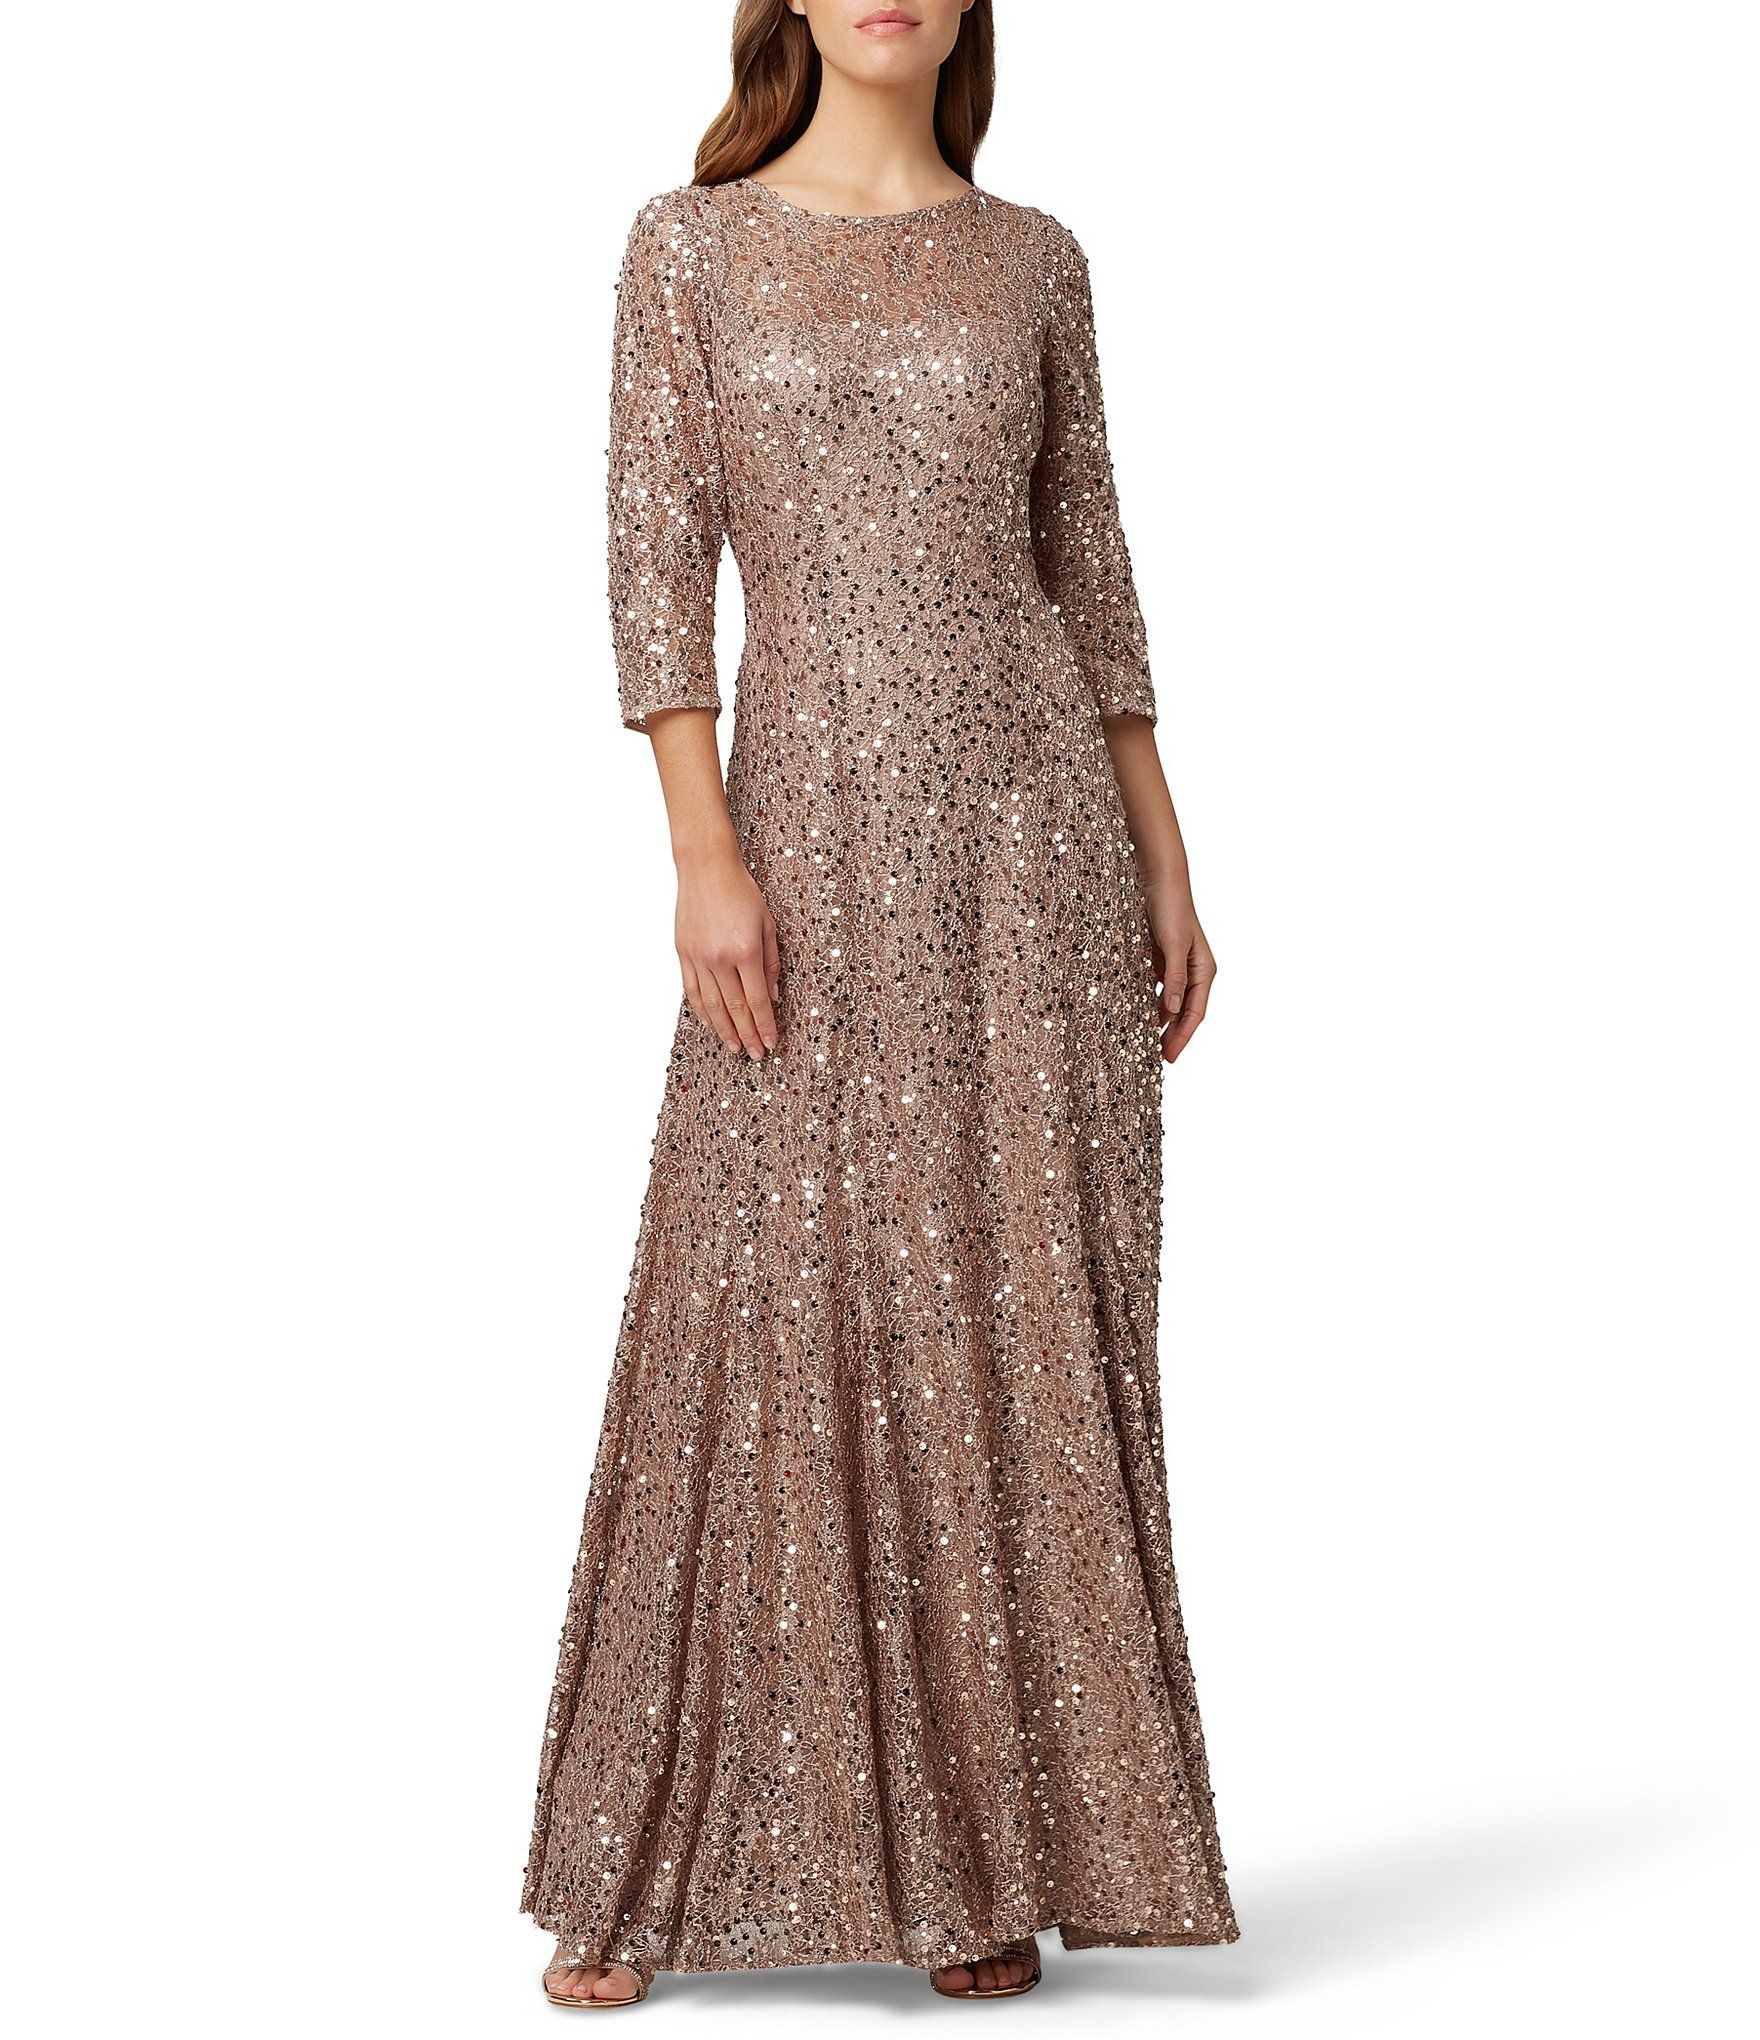 Tahari Asl V Back Sequin Lace A Line Gown Dillard S A Line Gown Gowns Formal Dresses For Women [ 2040 x 1760 Pixel ]